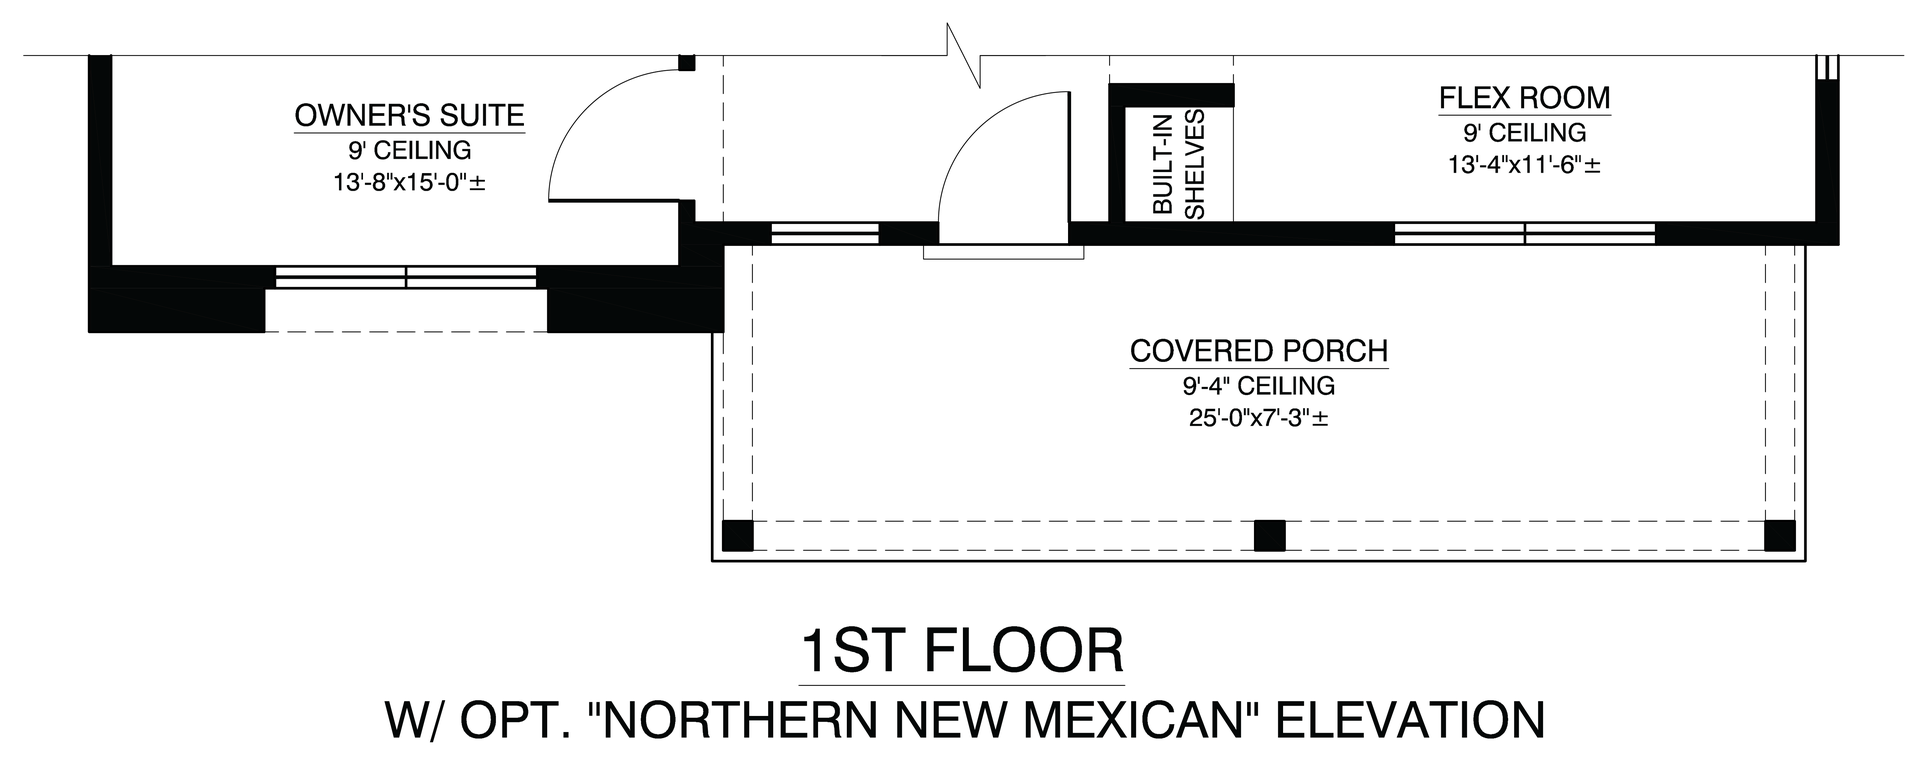 First Floor With Optional Northern New Mexican Elevation